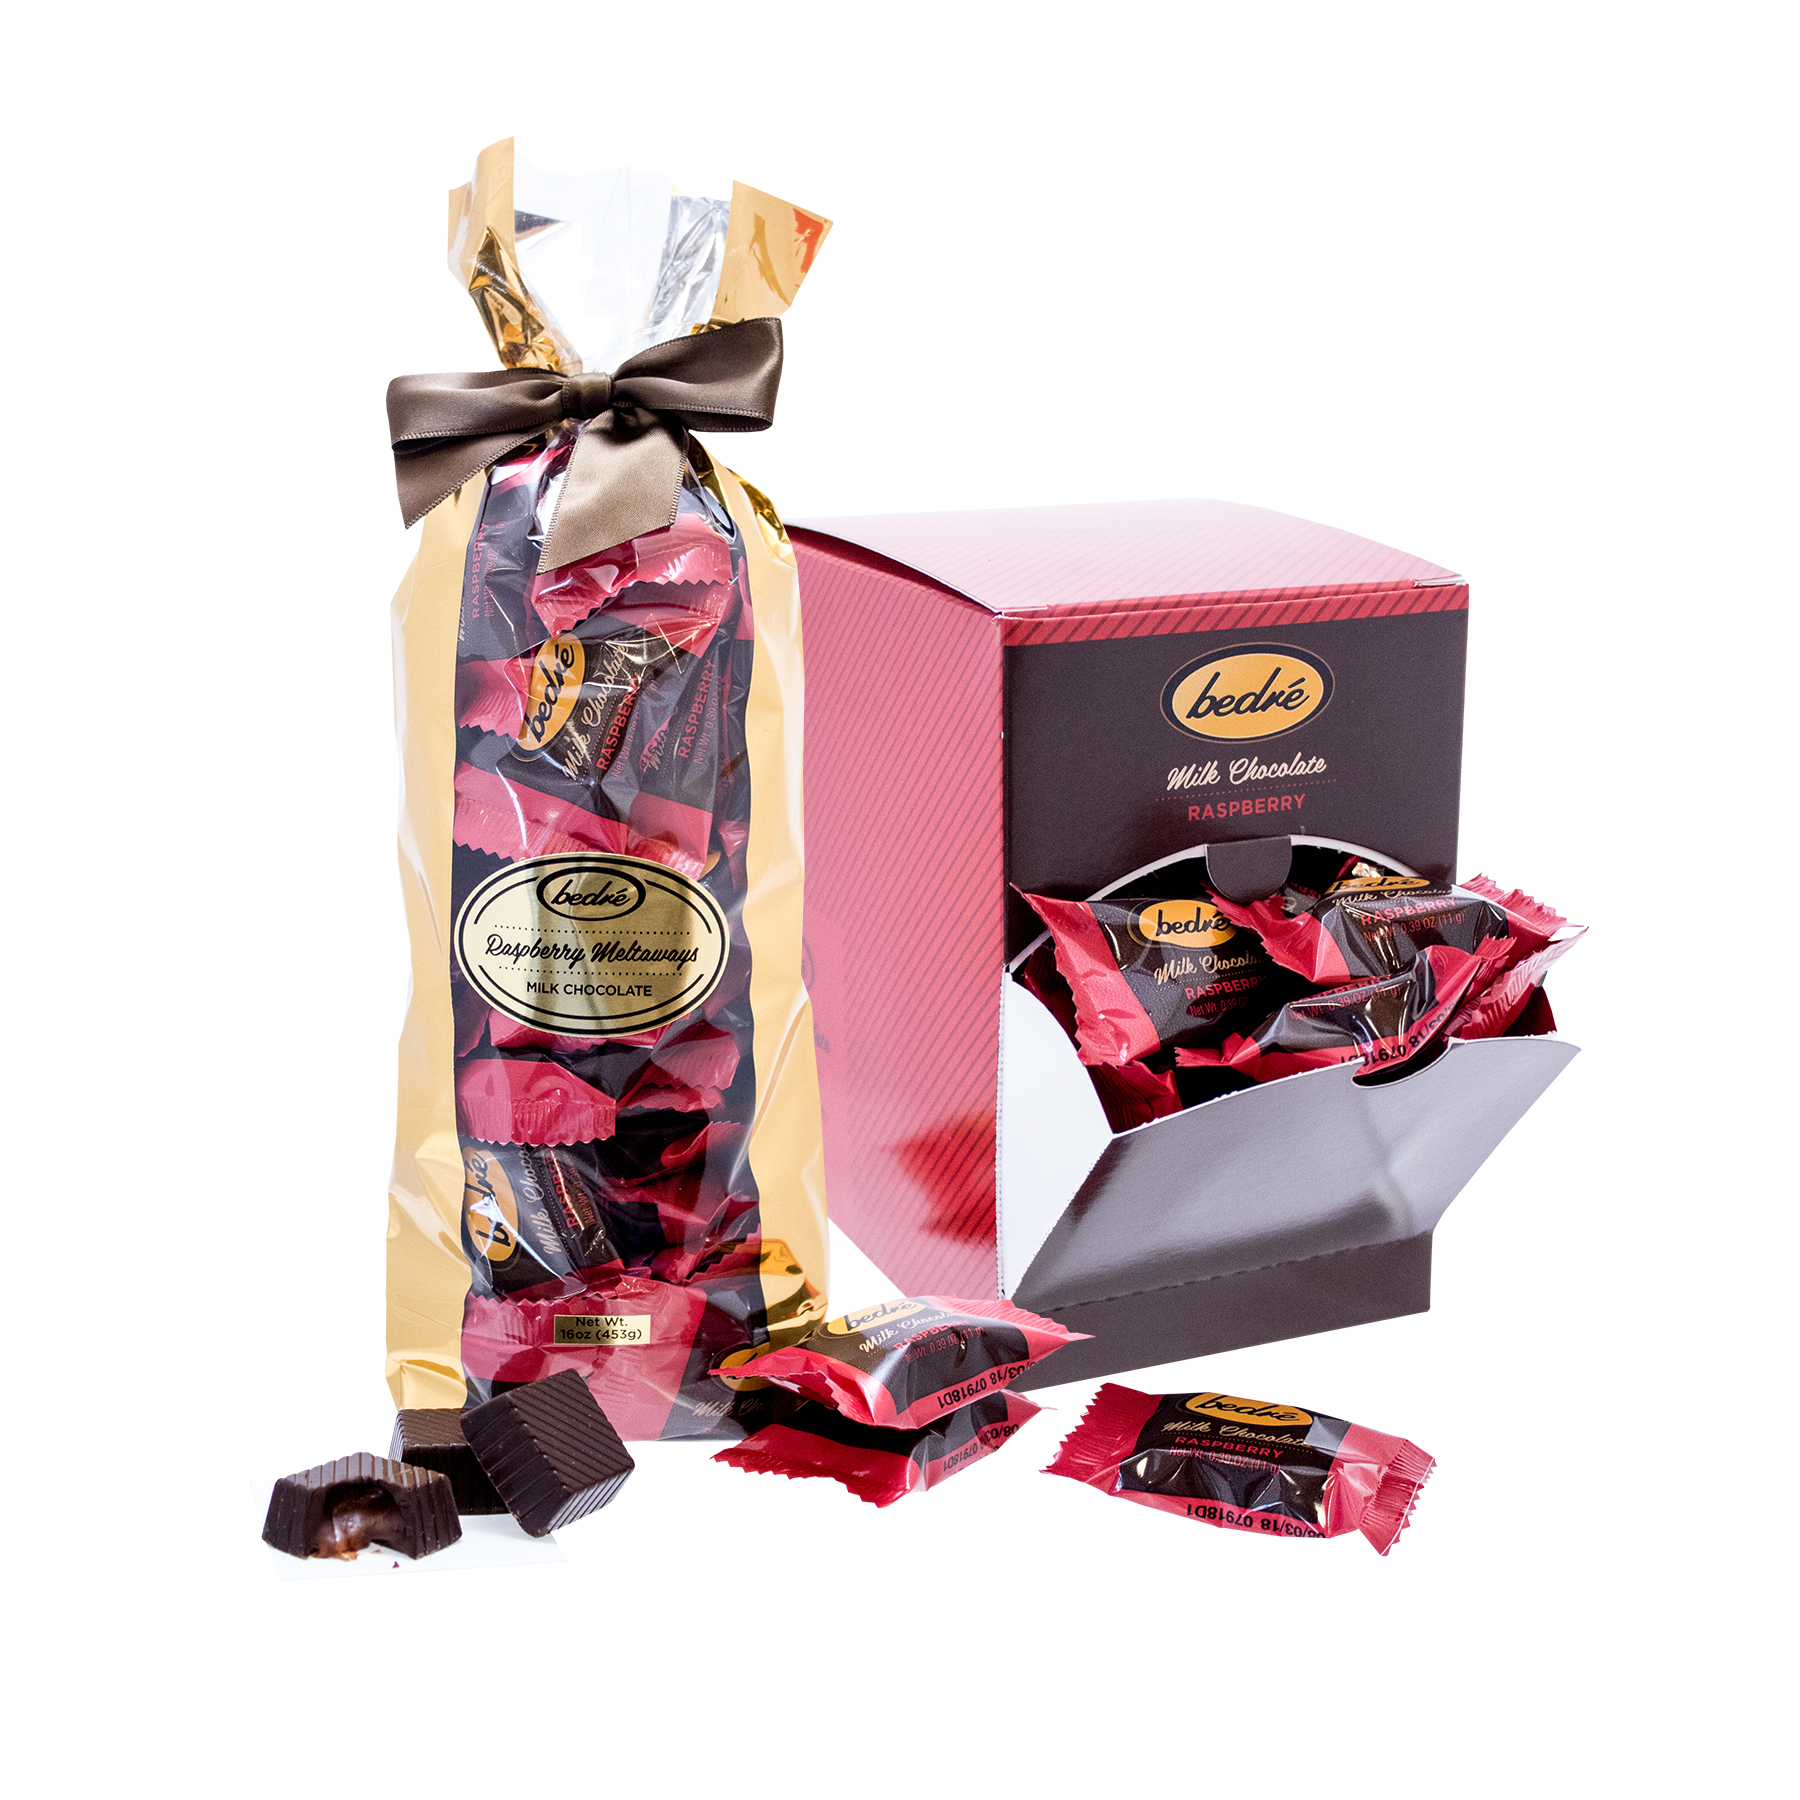 Bedre Chocolate Milk Chocolate Raspberry Meltaway